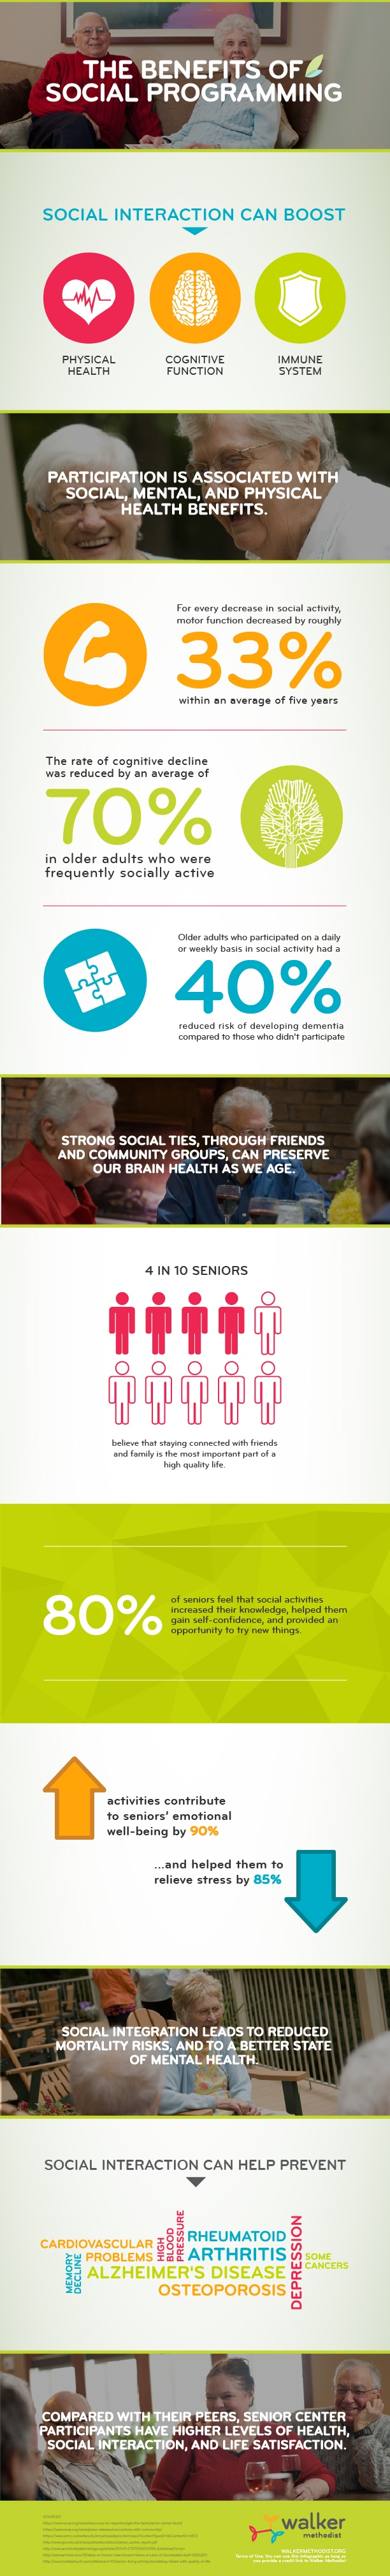 Benefits of Social Programming for Seniors